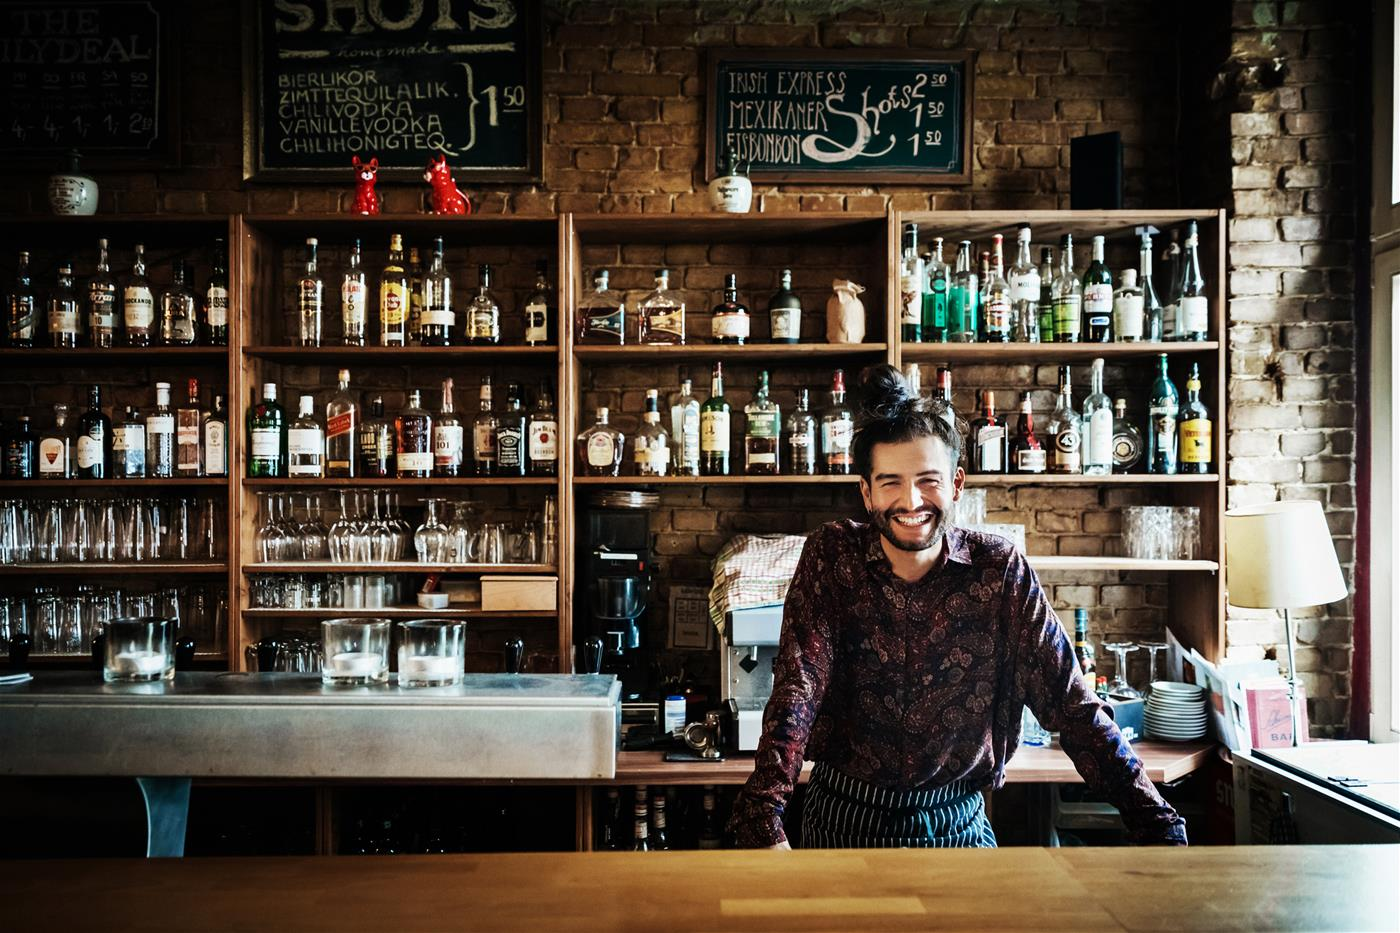 Bartender smiling behind the counter